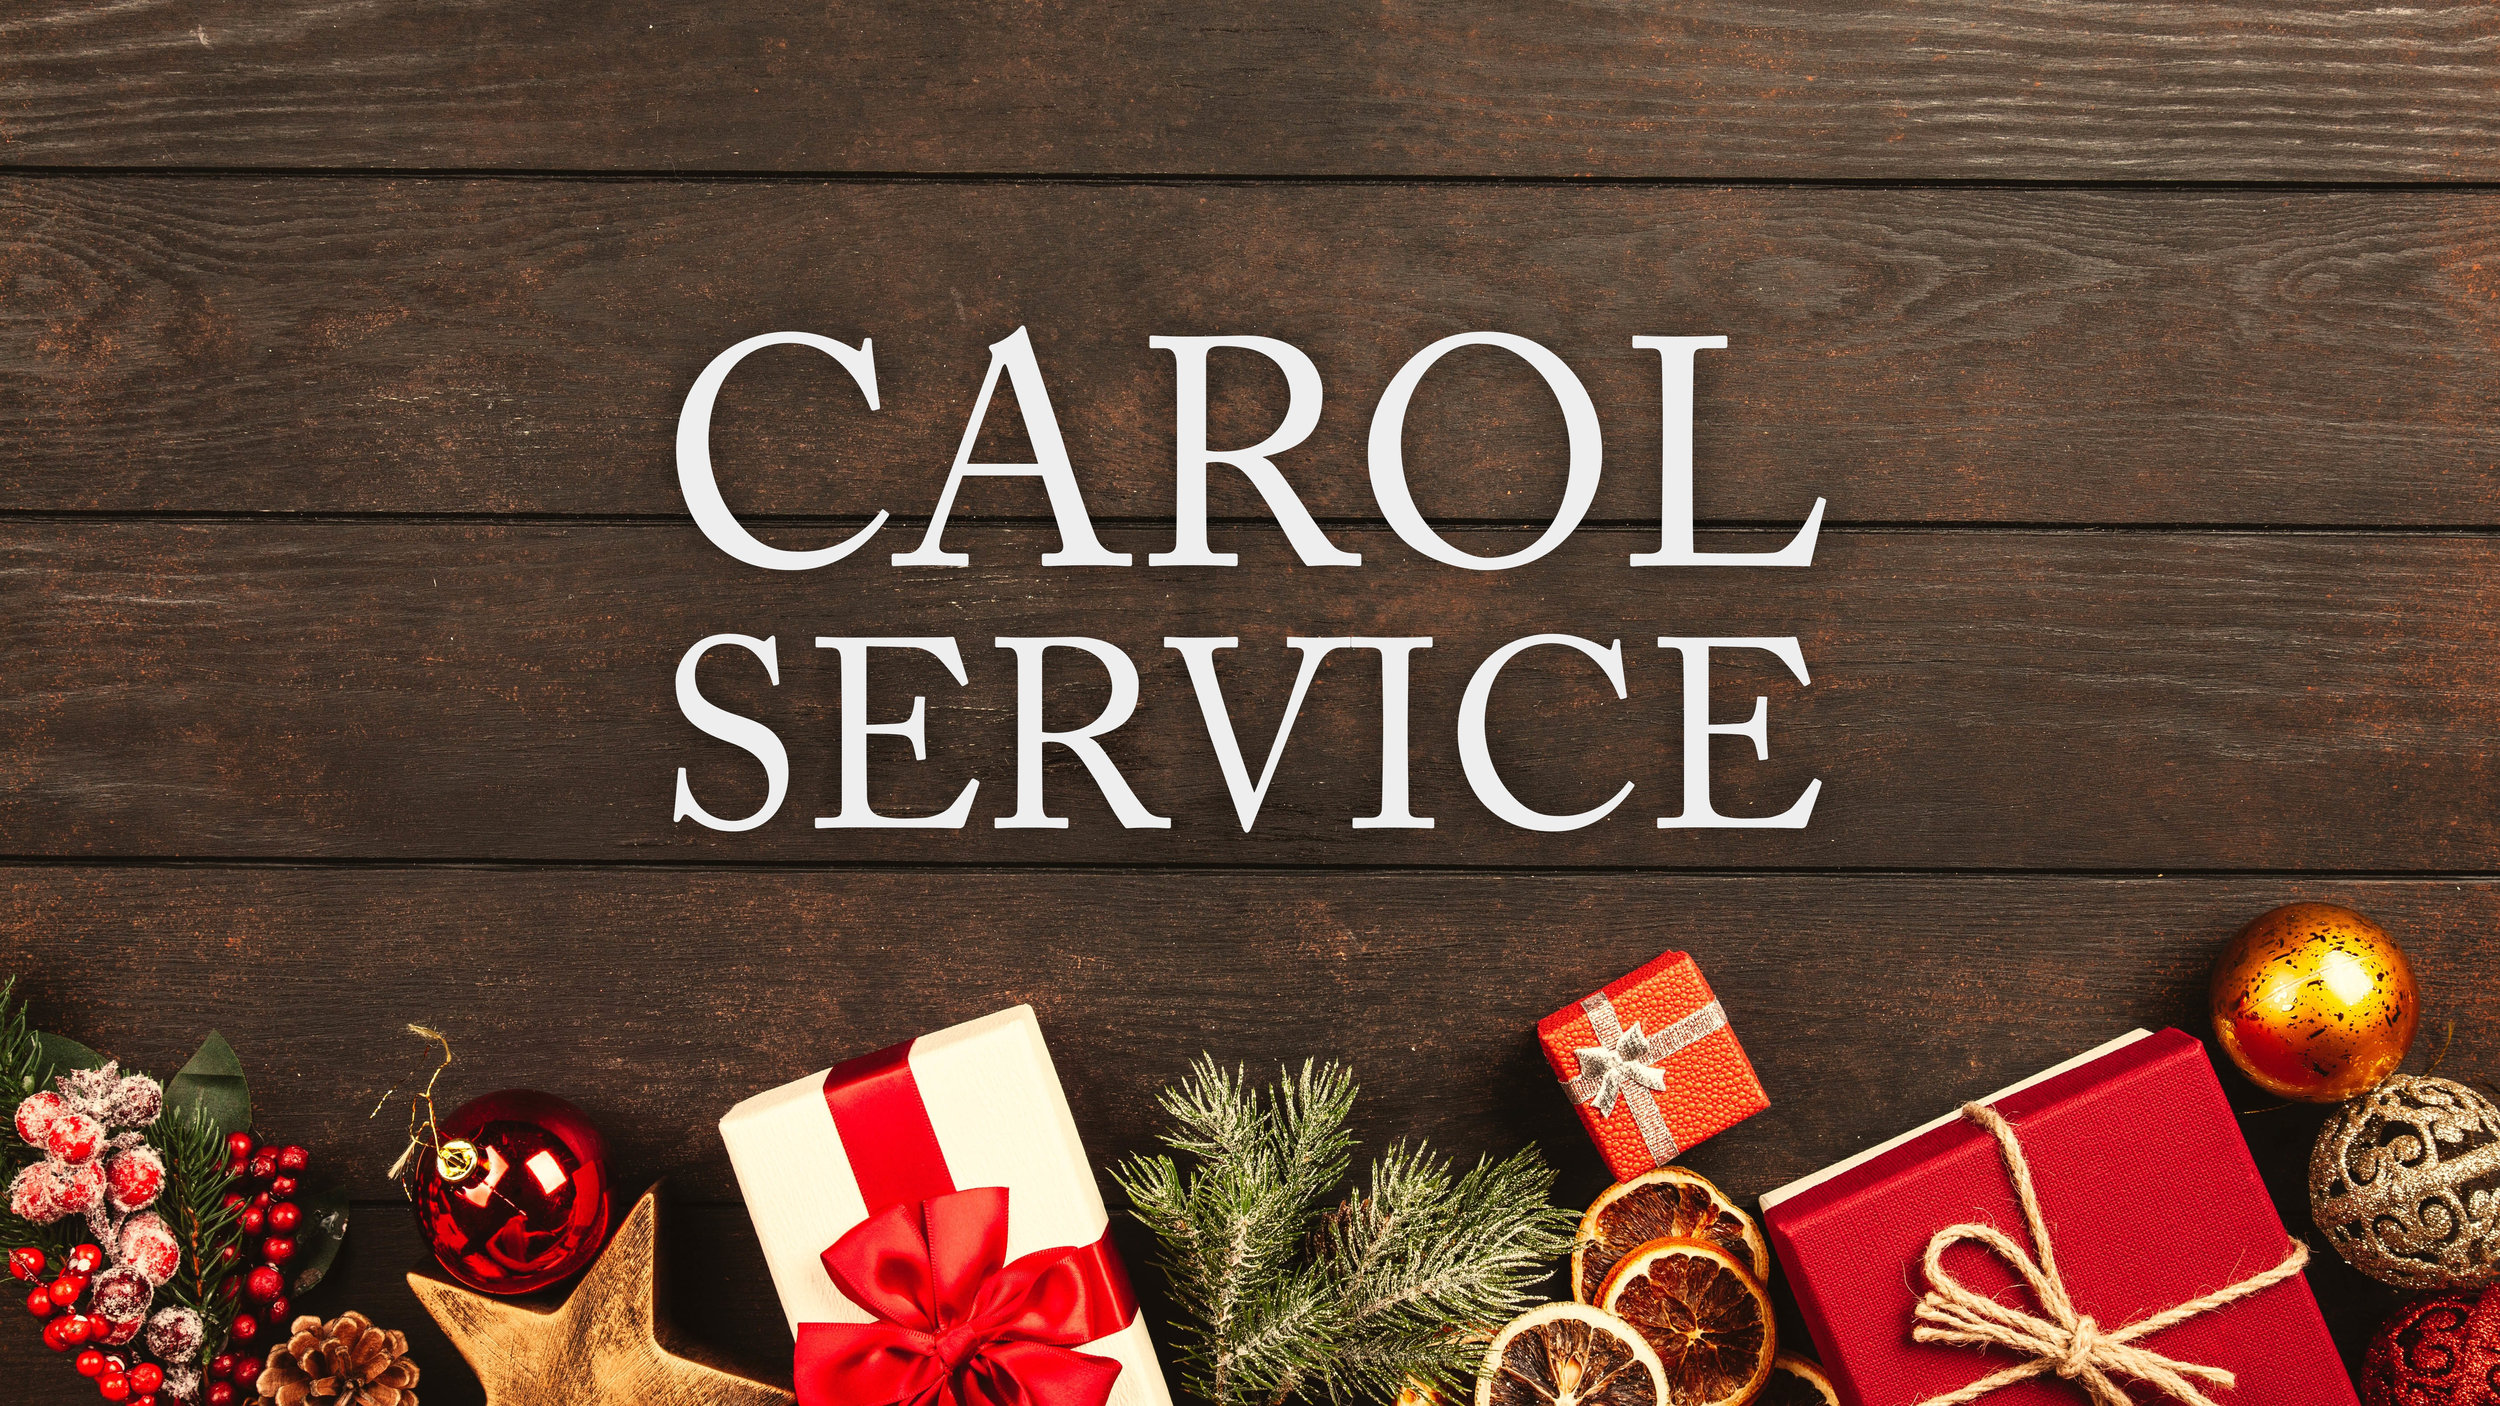 Carol Service 2018 - The Prince and the Maiden: A Christmas Parable